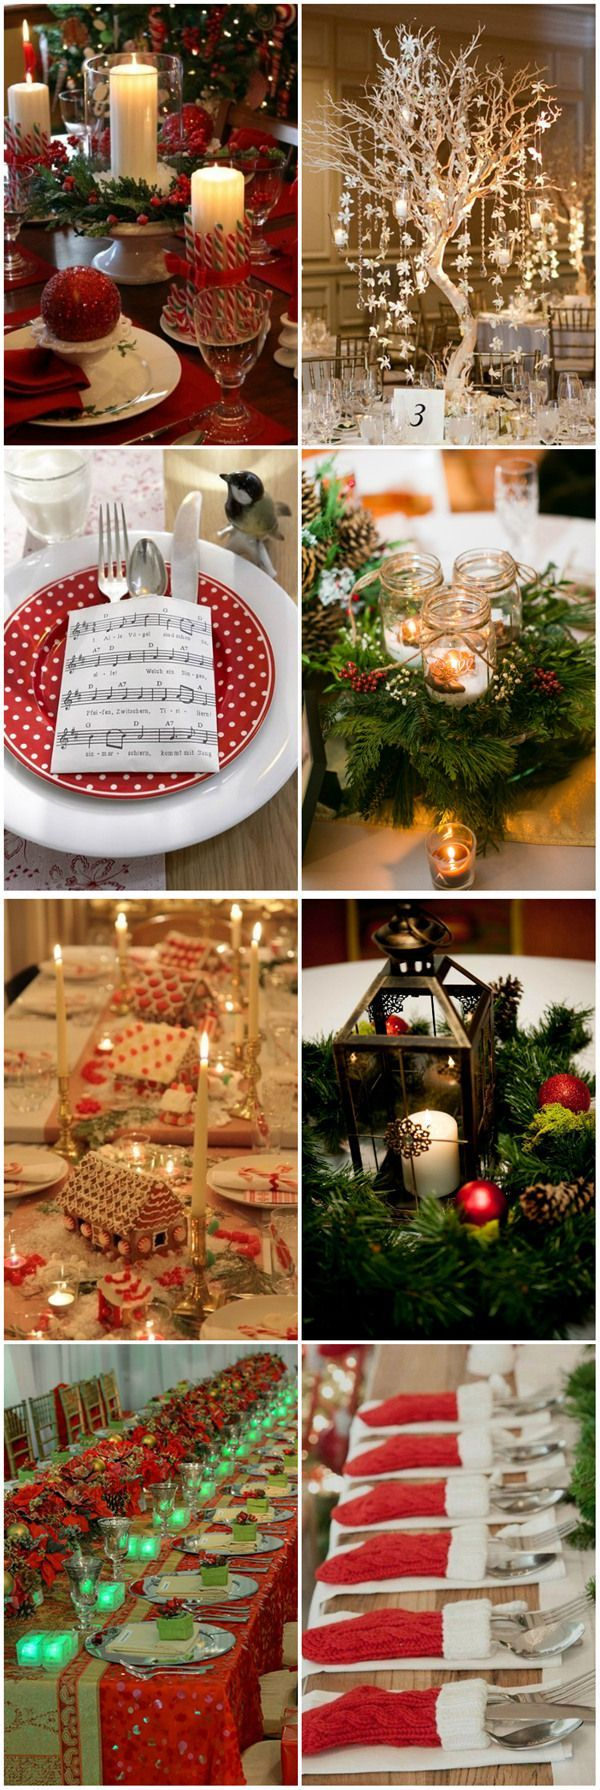 Country christmas table decoration ideas - Christmas Inspired Wedding Centerpiece Ideas